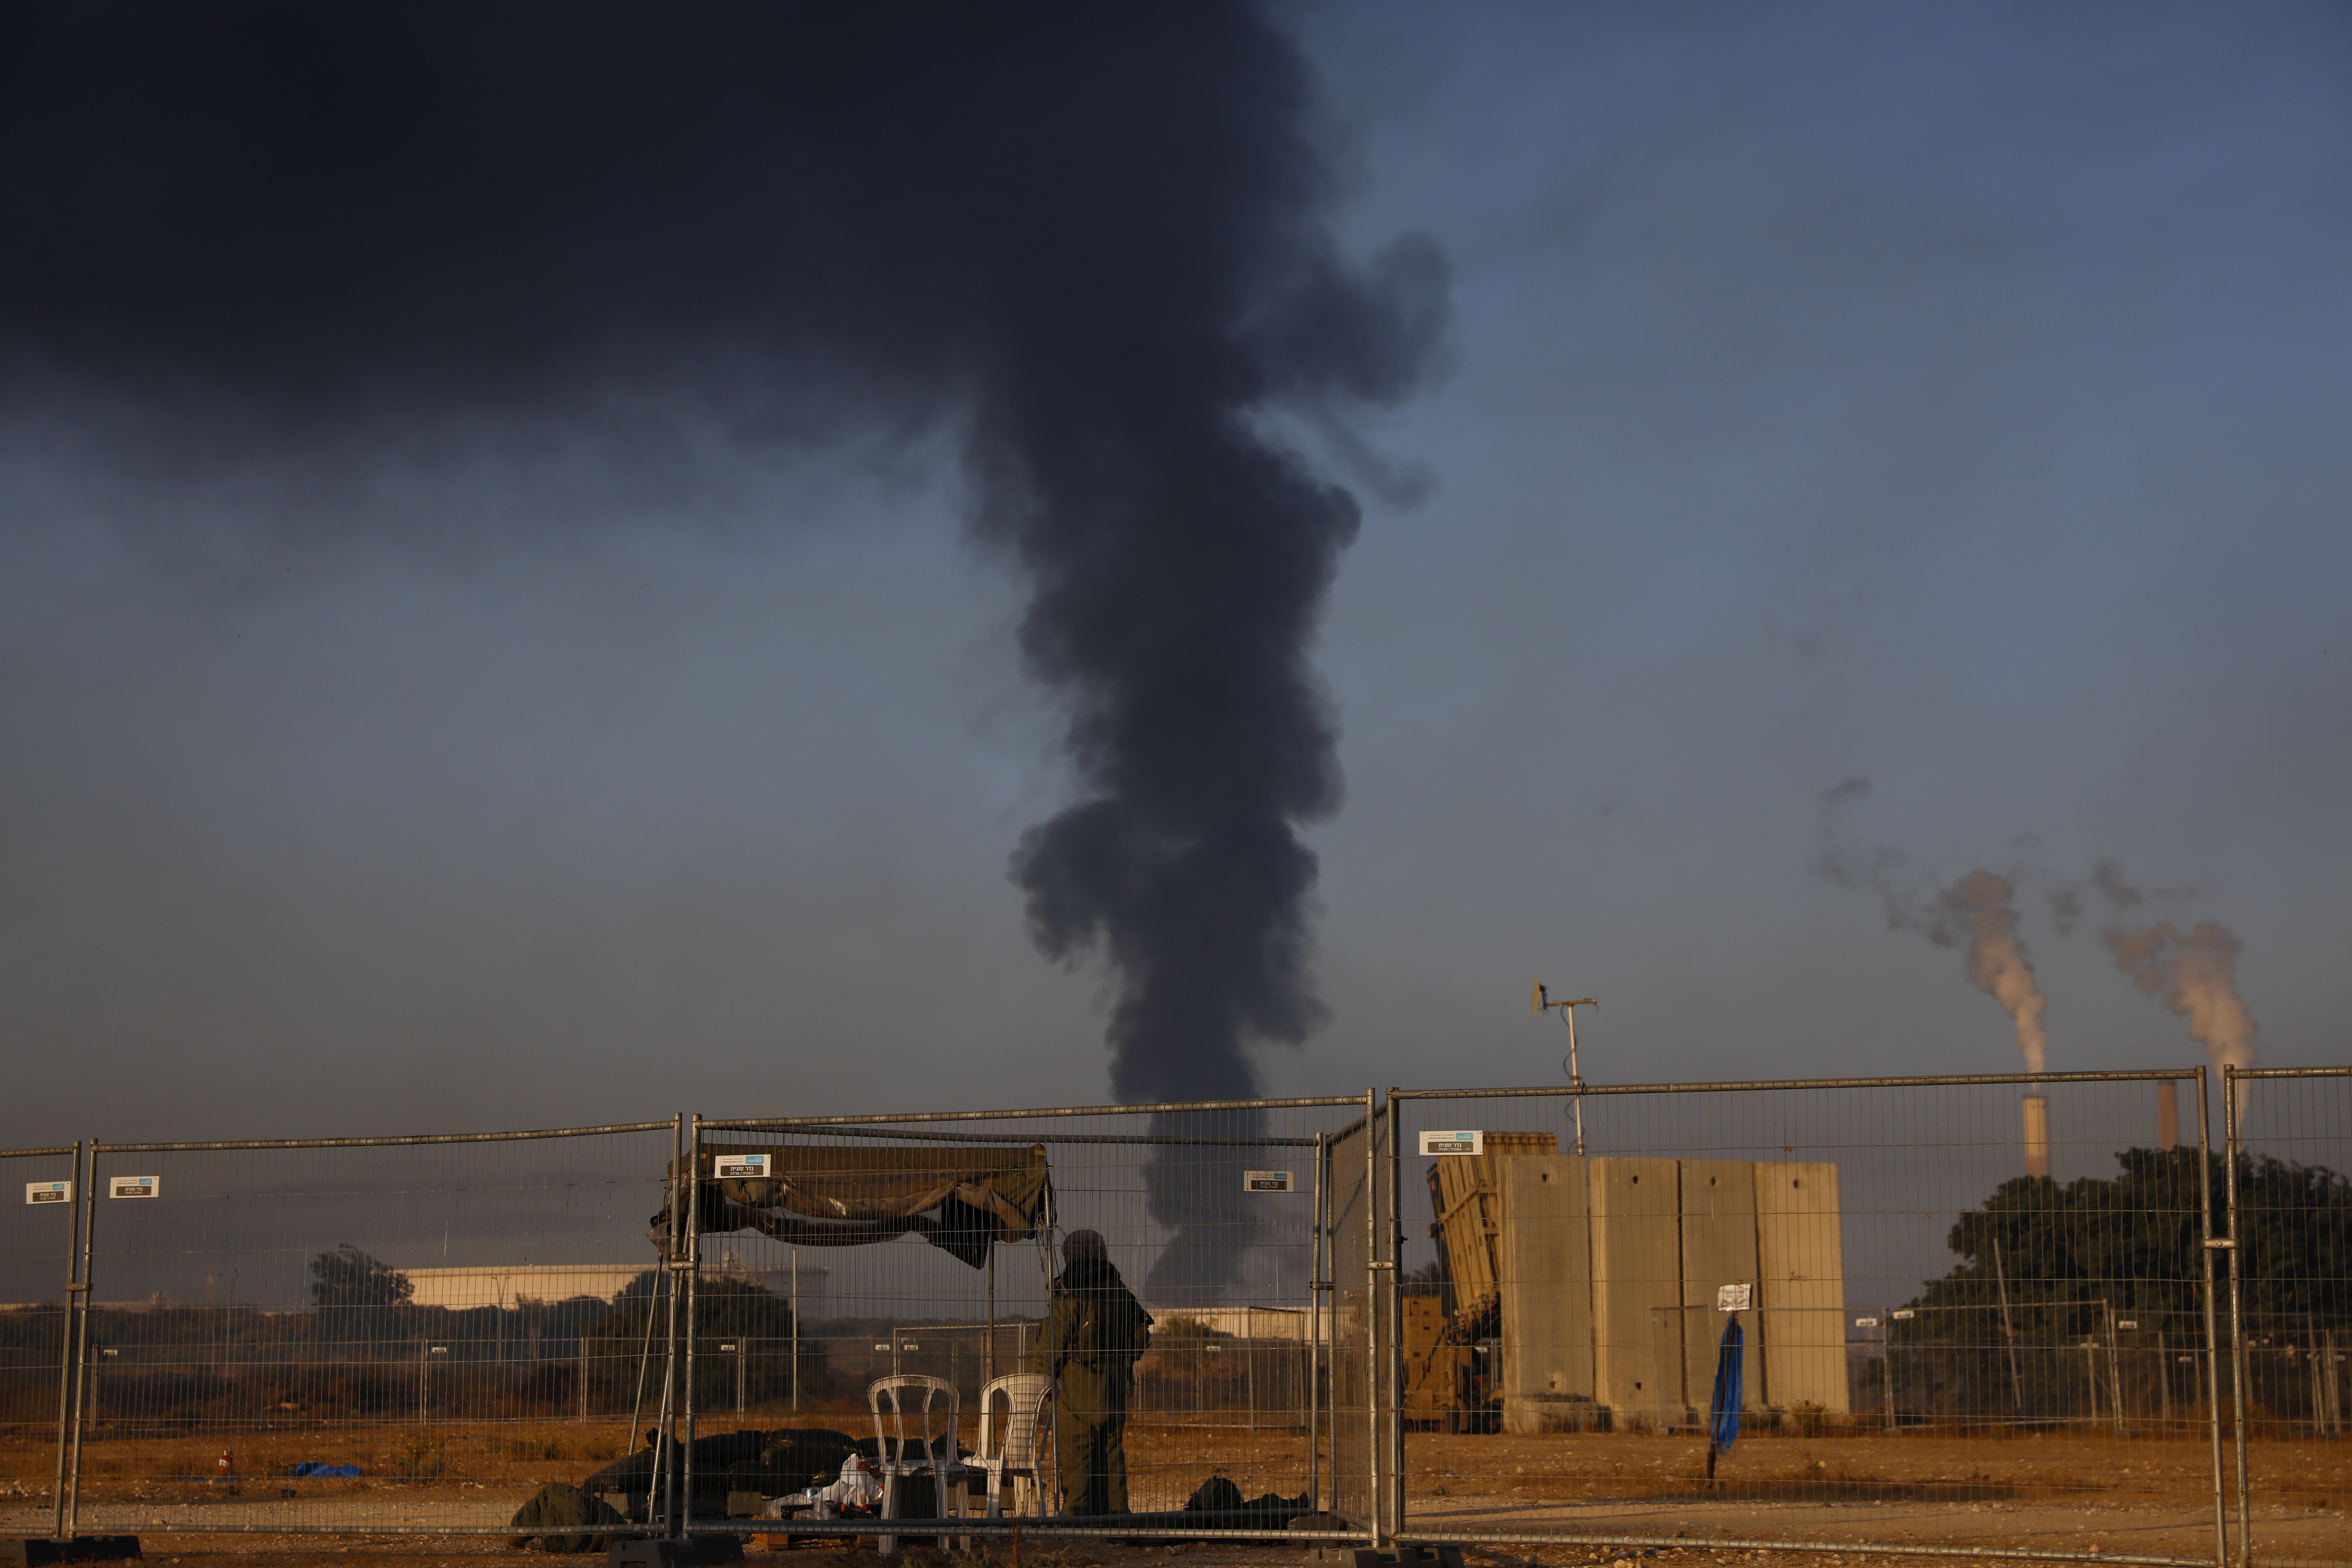 An Israeli soldier stands guard next to an Iron Dome air defense system as smoke rises from an oil tank on fire after it was hit by a rocket fired from Gaza Strip, near the town of Ashkelon, Israel.